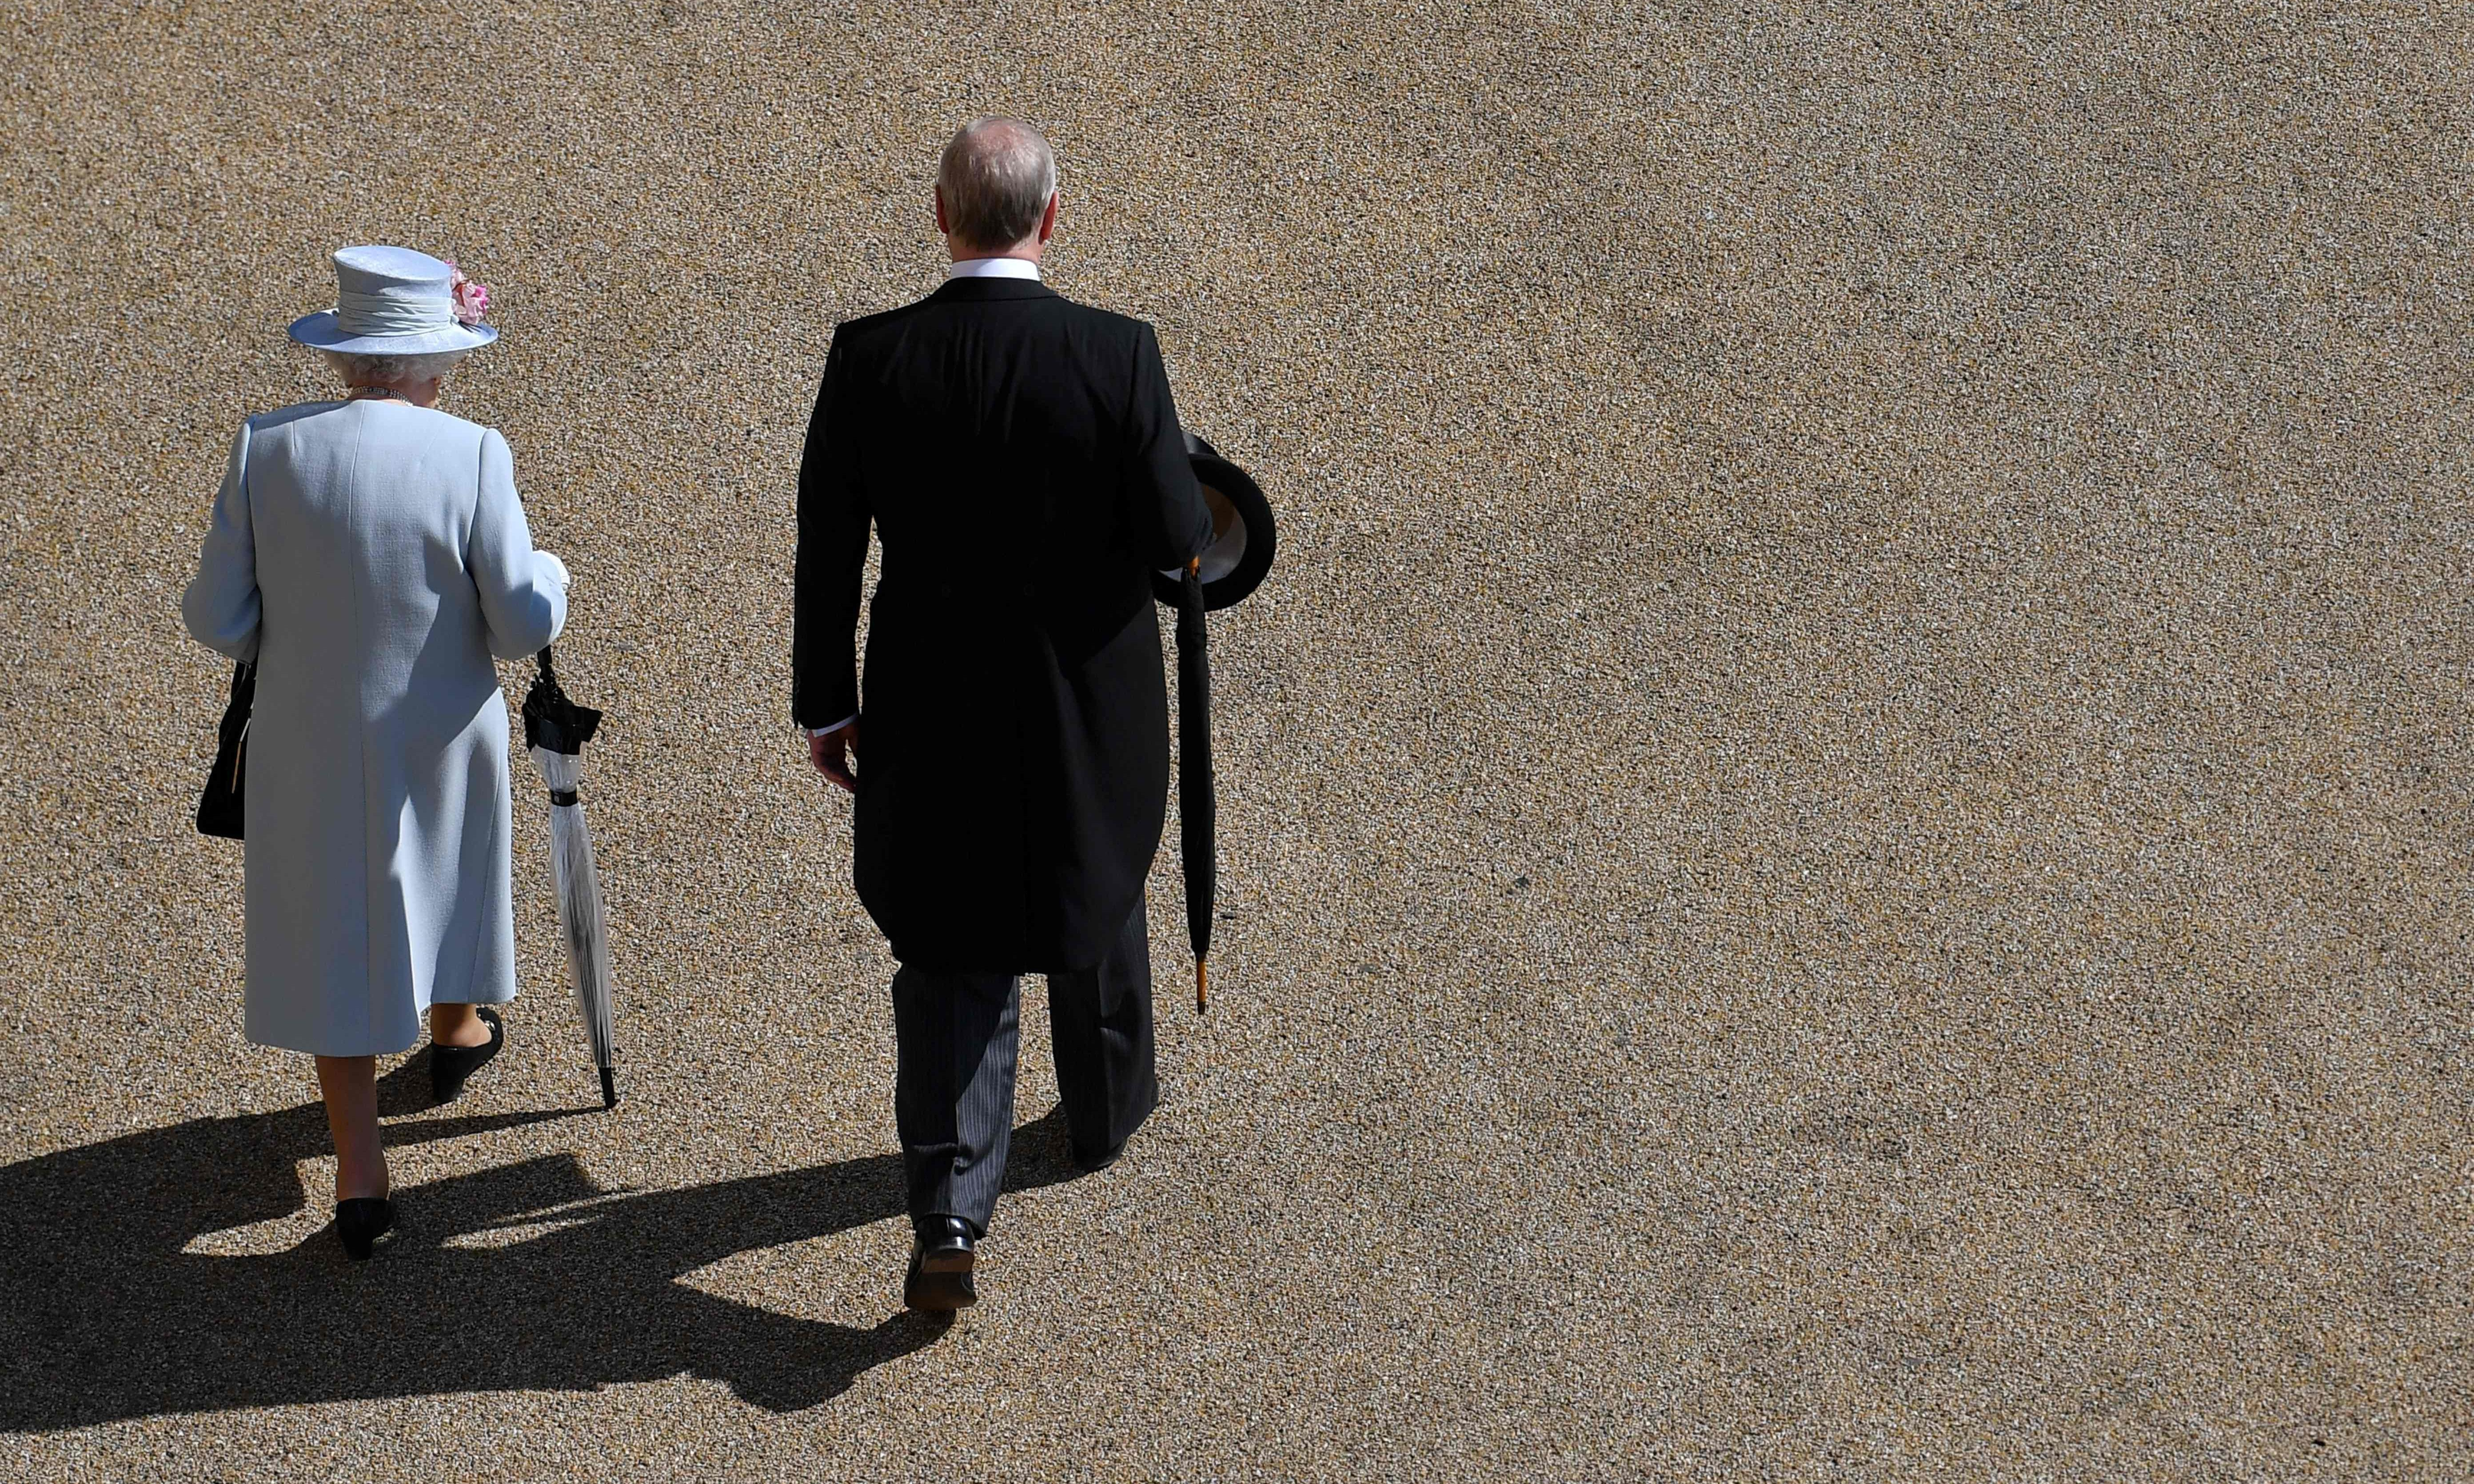 Prince Andrew's behaviour has put the very future of the monarchy in doubt